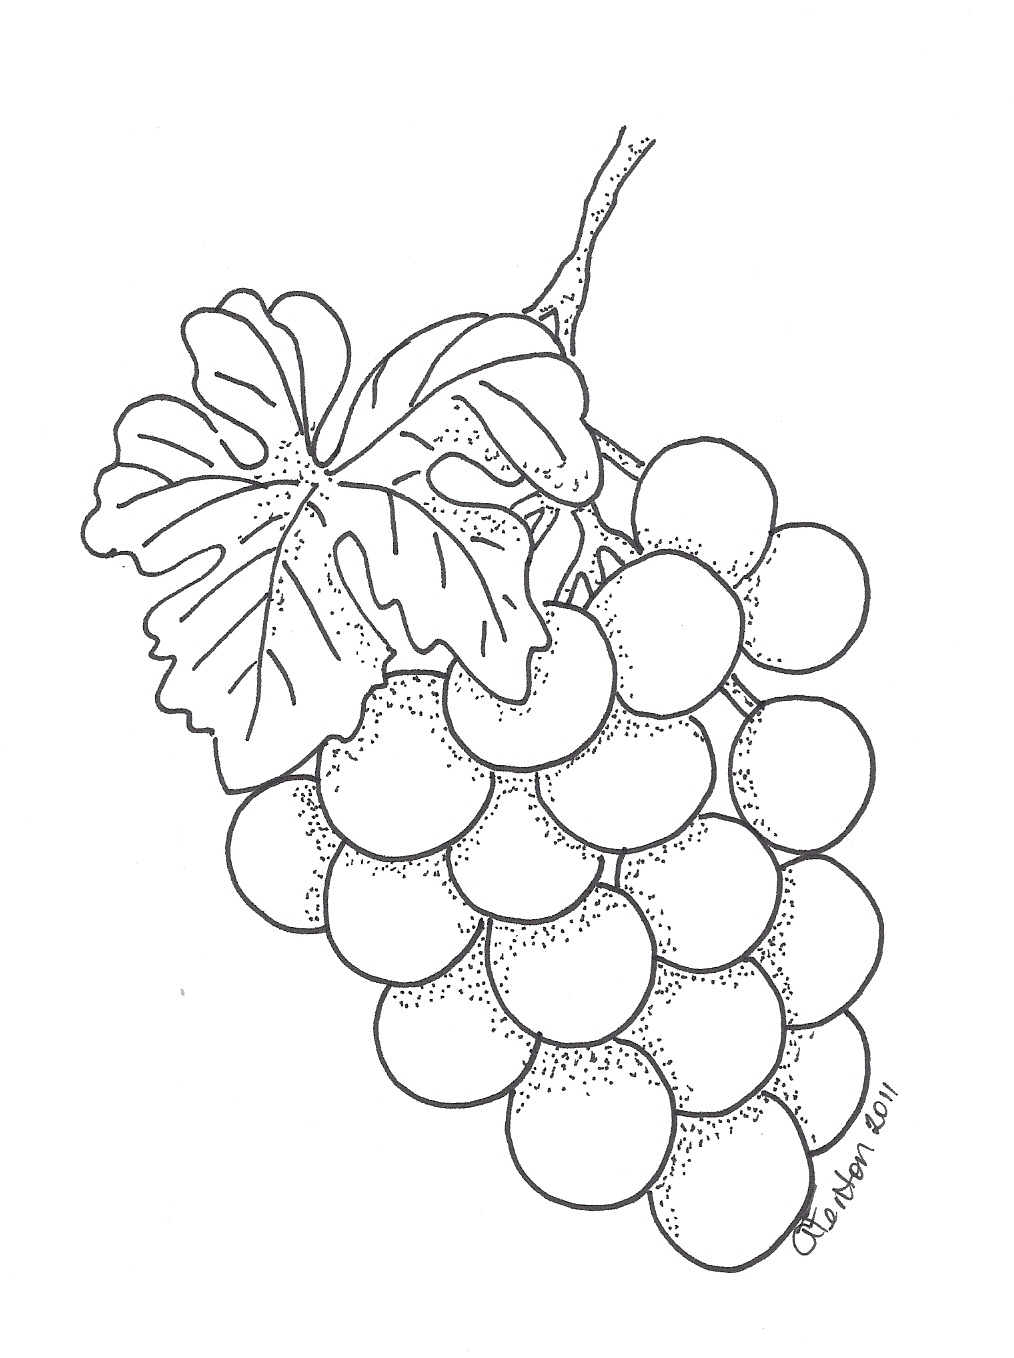 Pencil Drawing Grapes